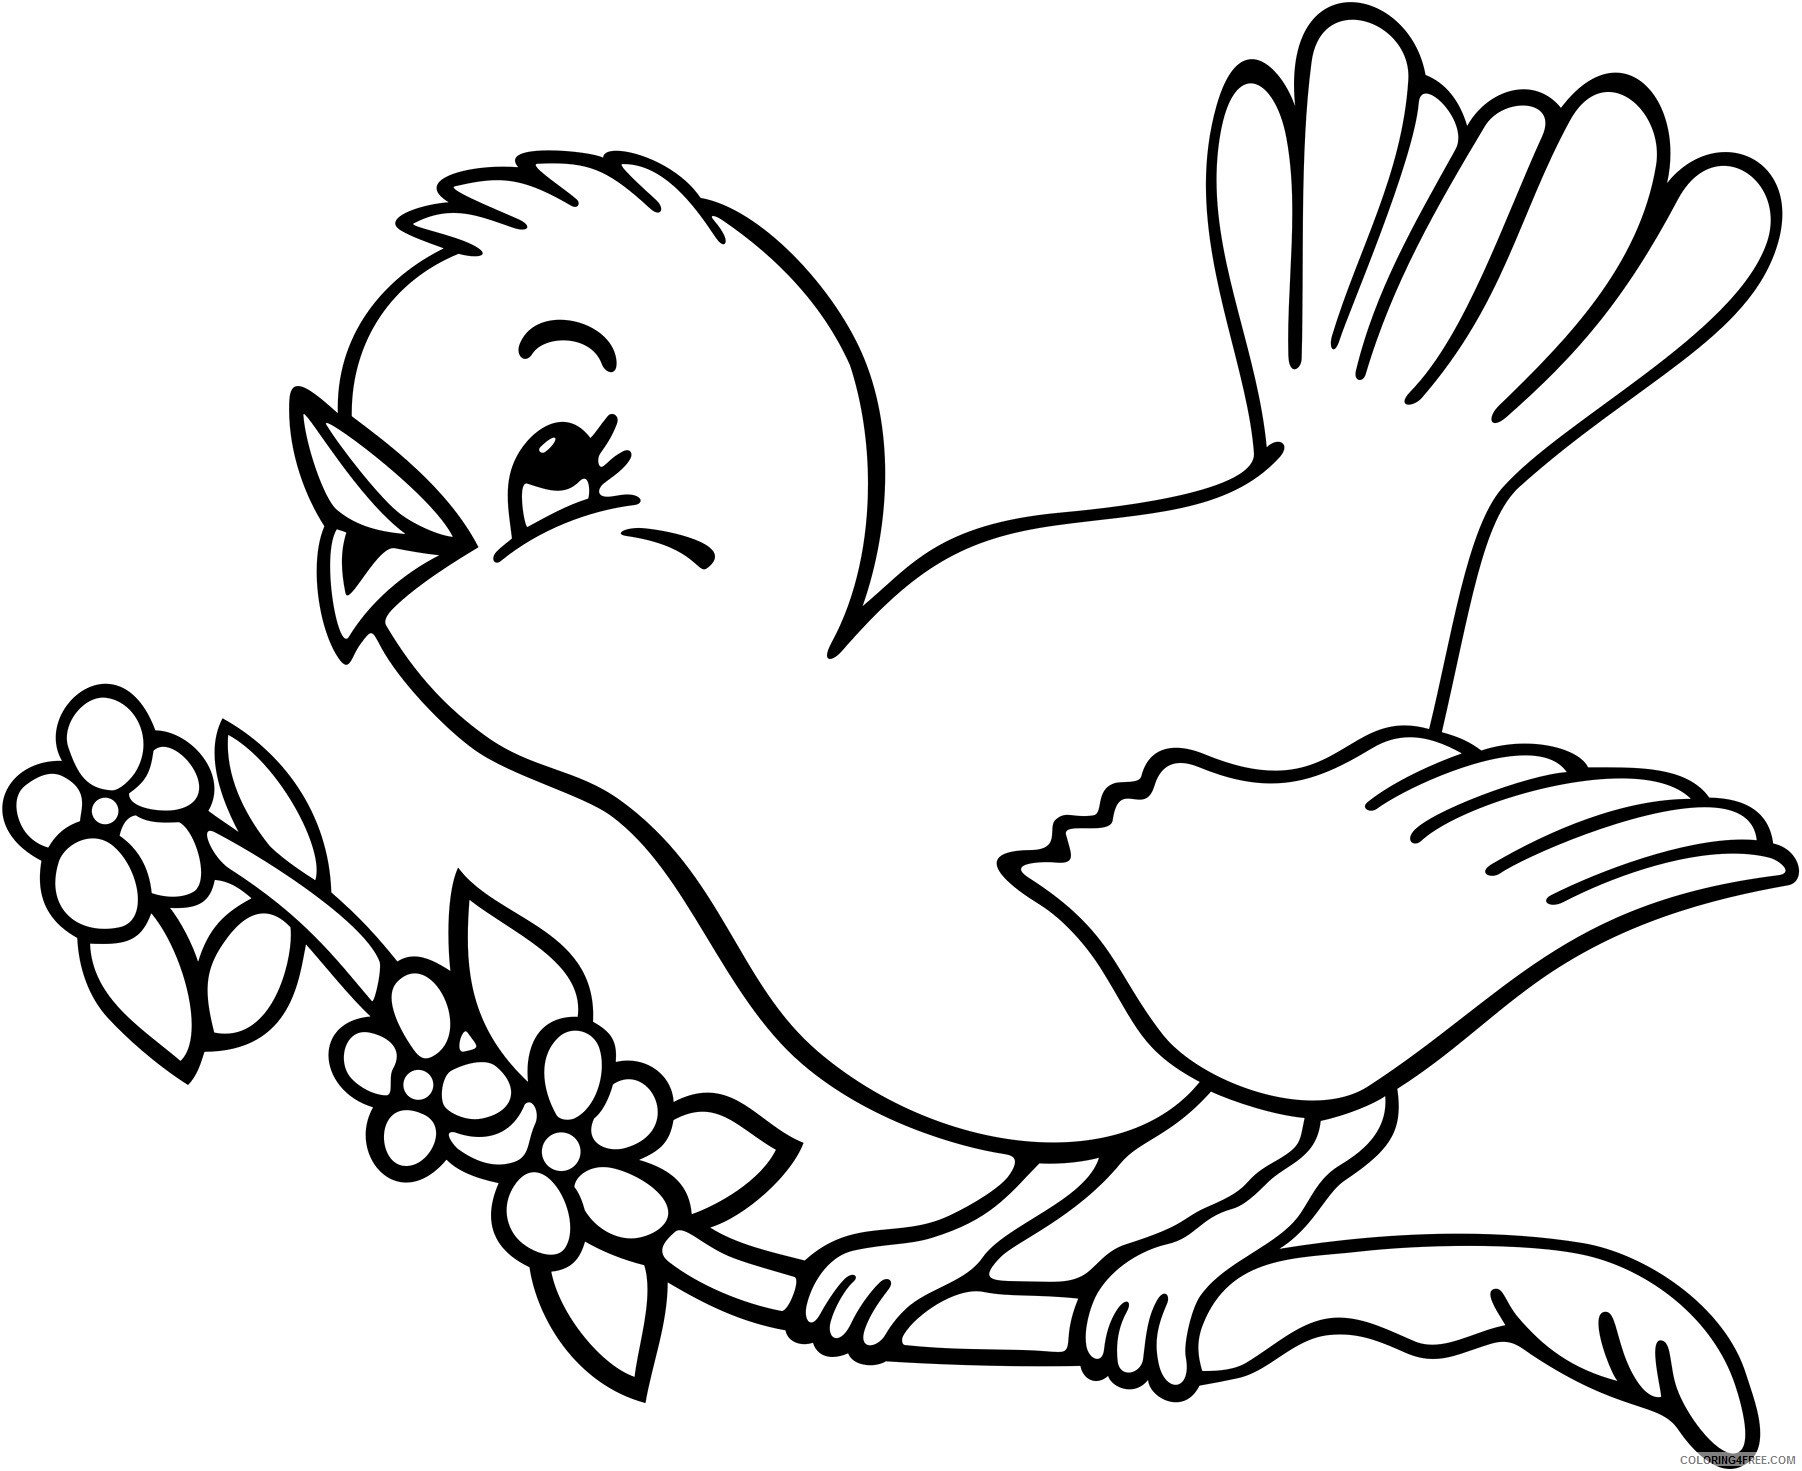 bird coloring pages perching on branch Coloring4free